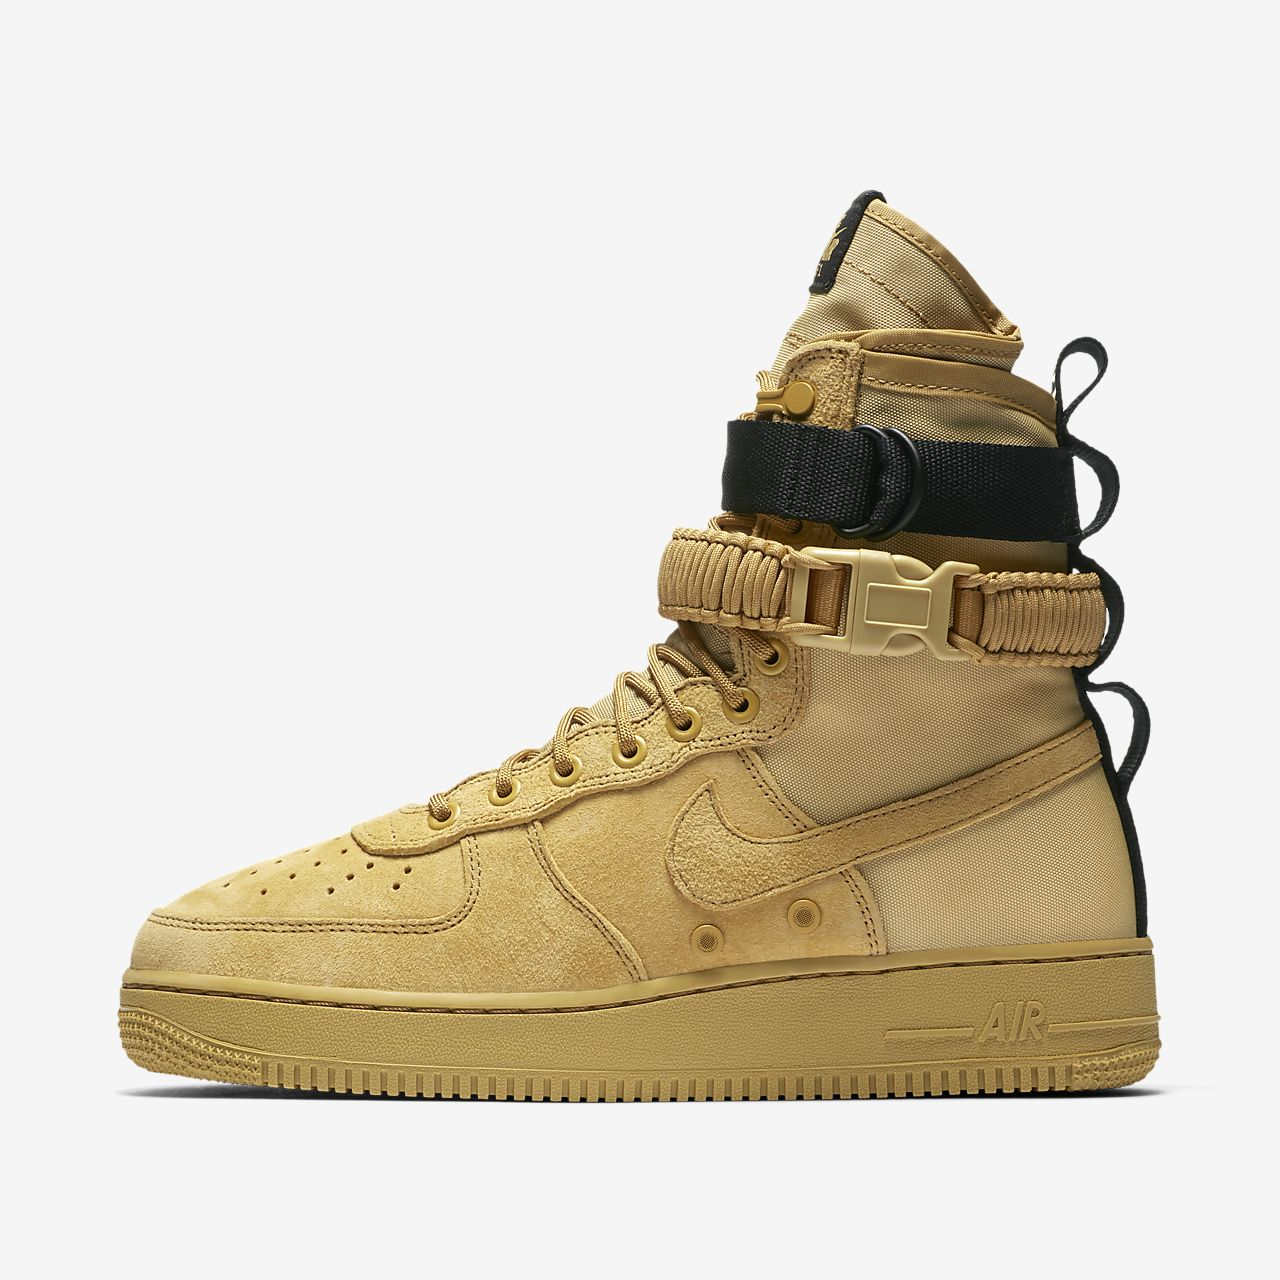 Botte Nike SF Air Force 1 pour Homme